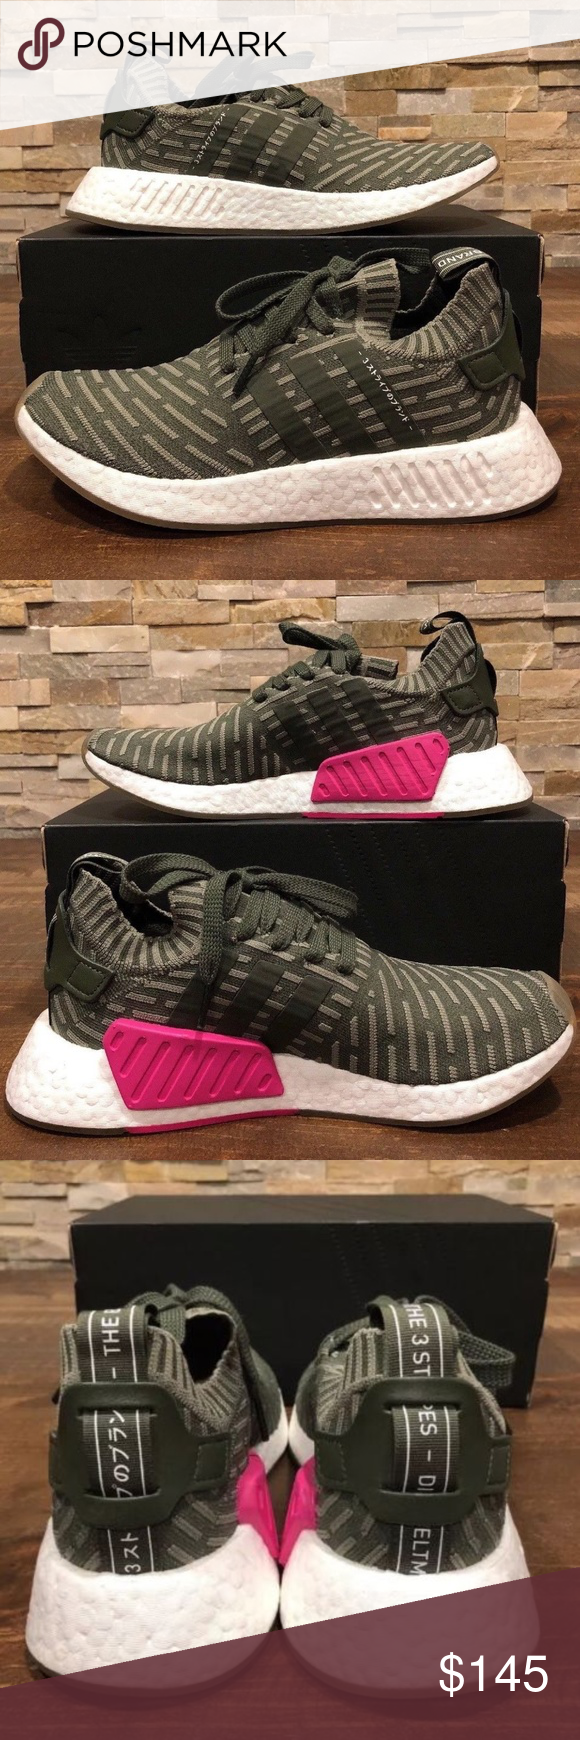 888ea988cb8af NEW WOMENS ADIDAS SHOES NMD R2 NEW WOMENS ADIDAS SHOES SZ 8 NMD R2 PK BY9953  New With Box Shipped Double Boxed adidas Shoes Sneakers